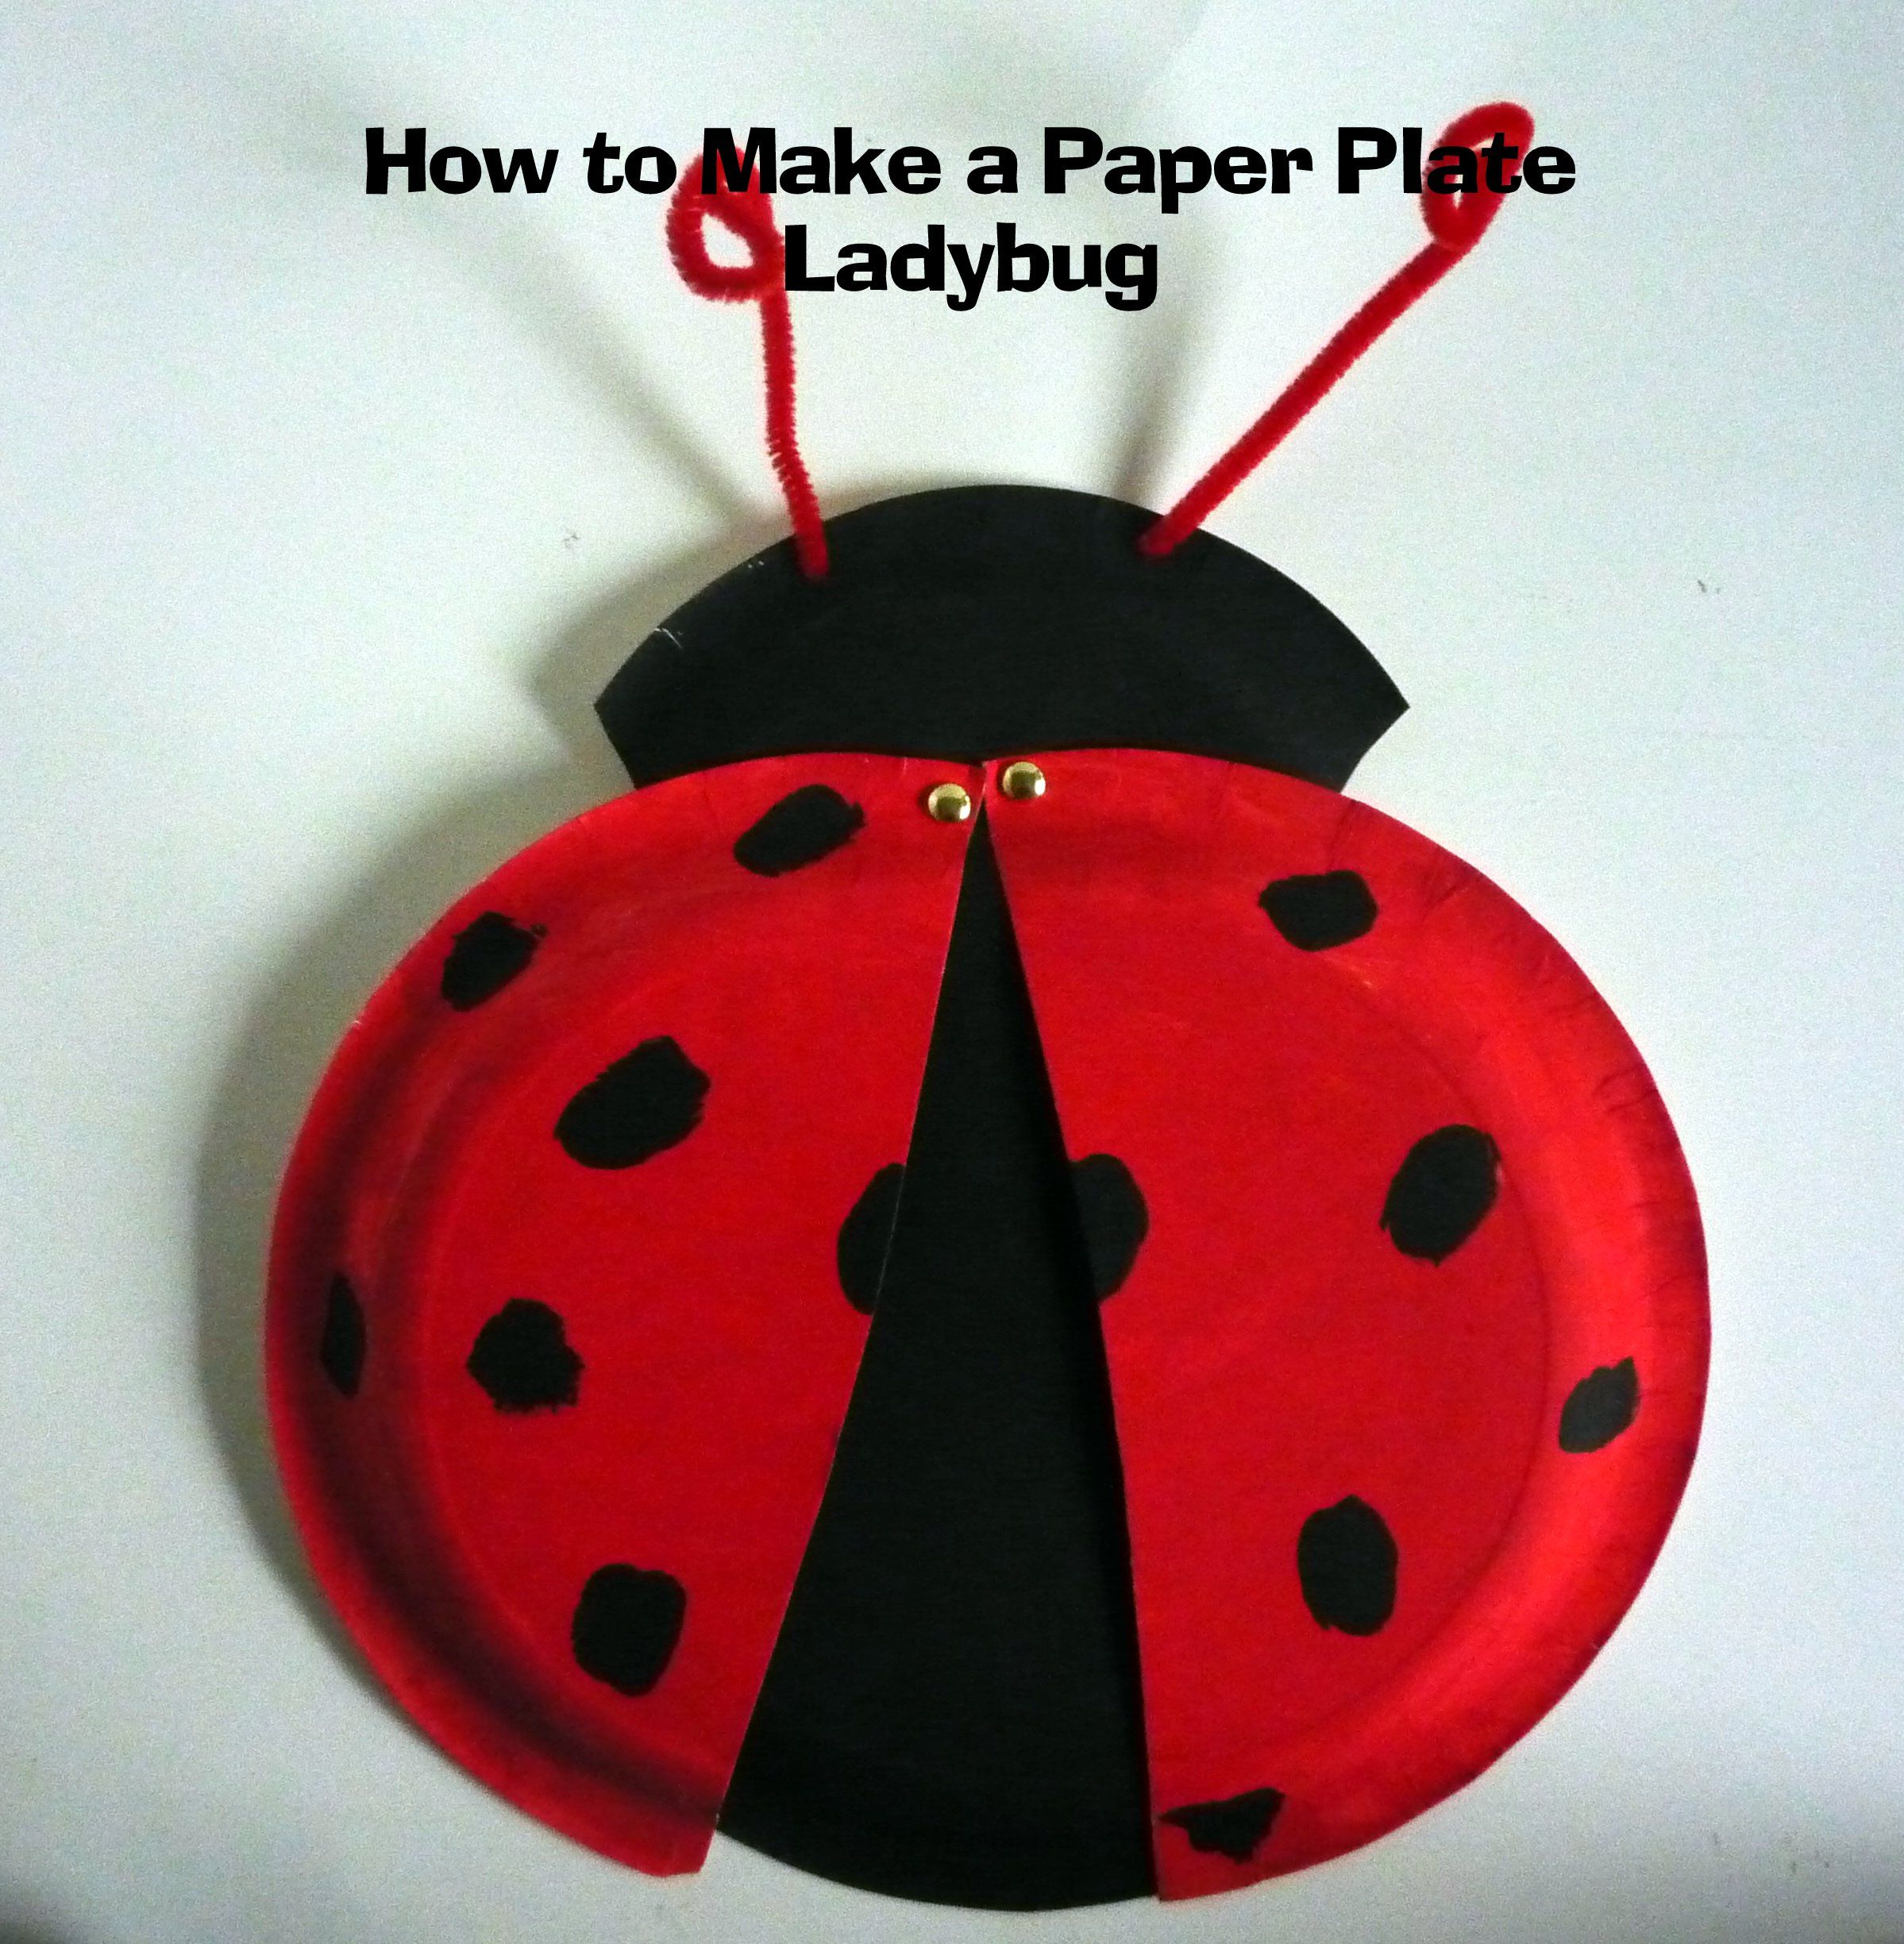 How to Make a Paper Plate Ladybug & How to Make a Paper Plate Ladybug | Activities for Kids | Pinterest ...